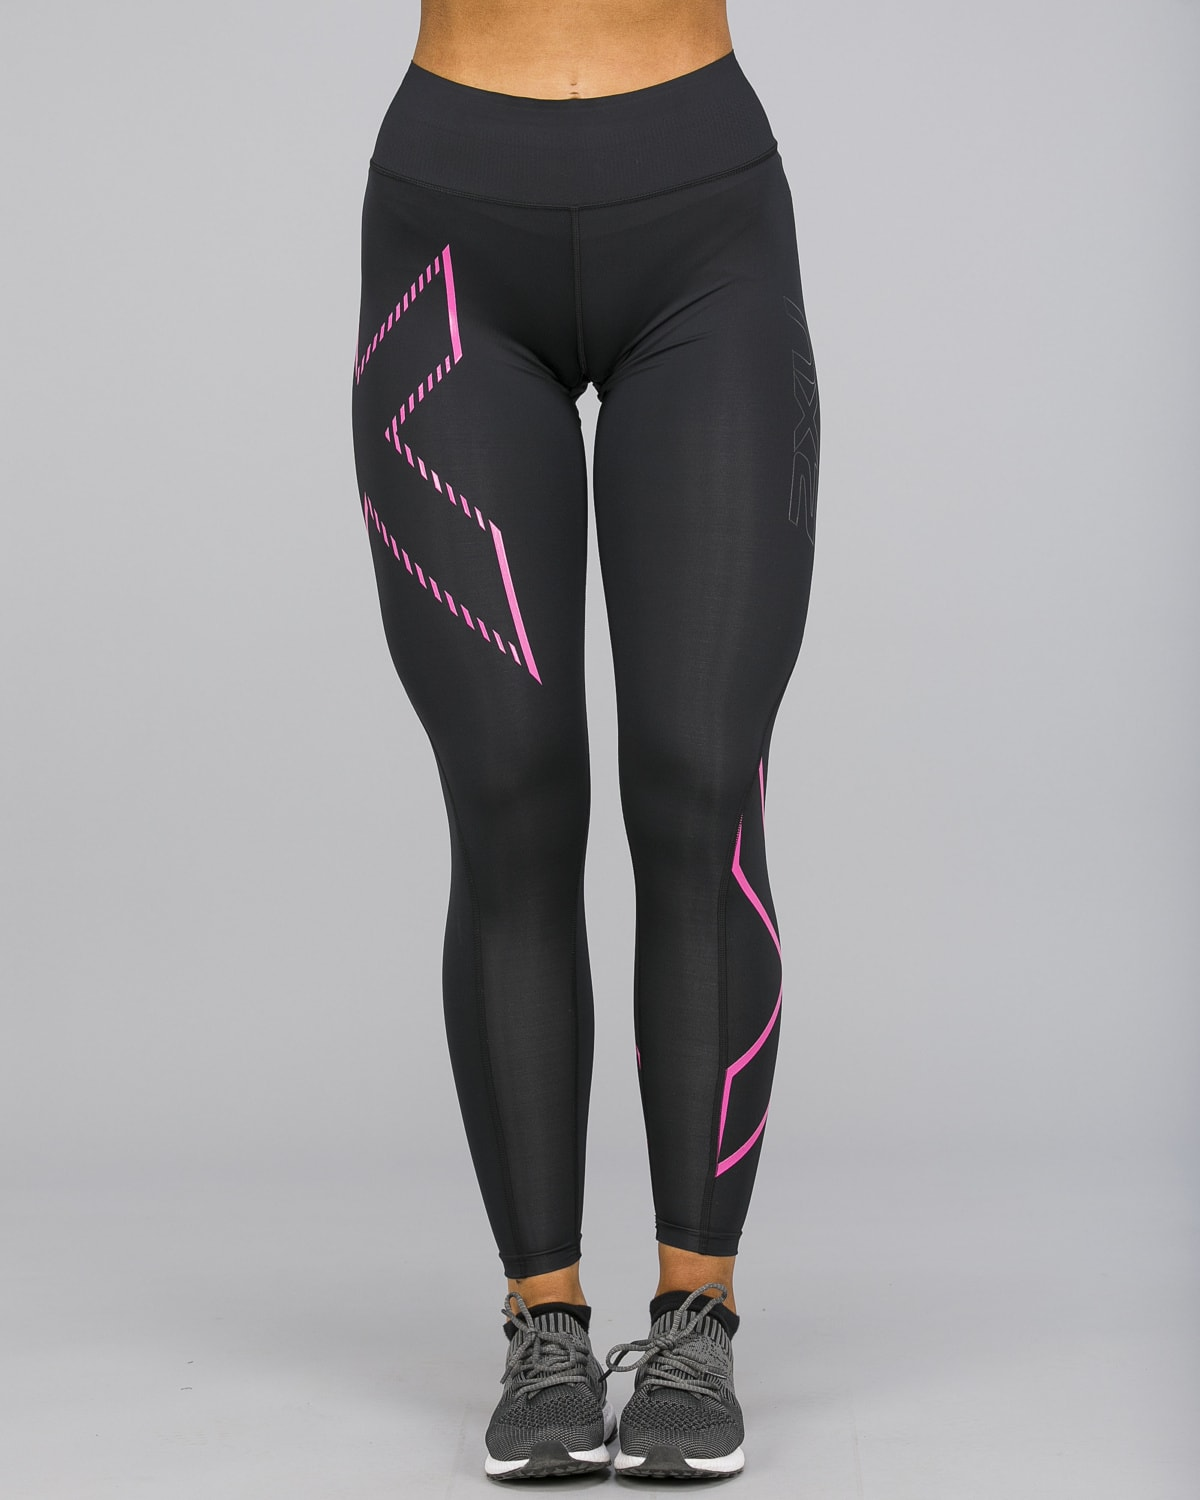 2XU – Bonded Mid-Rise Compression Tights – Black:Fracture Fuschia d